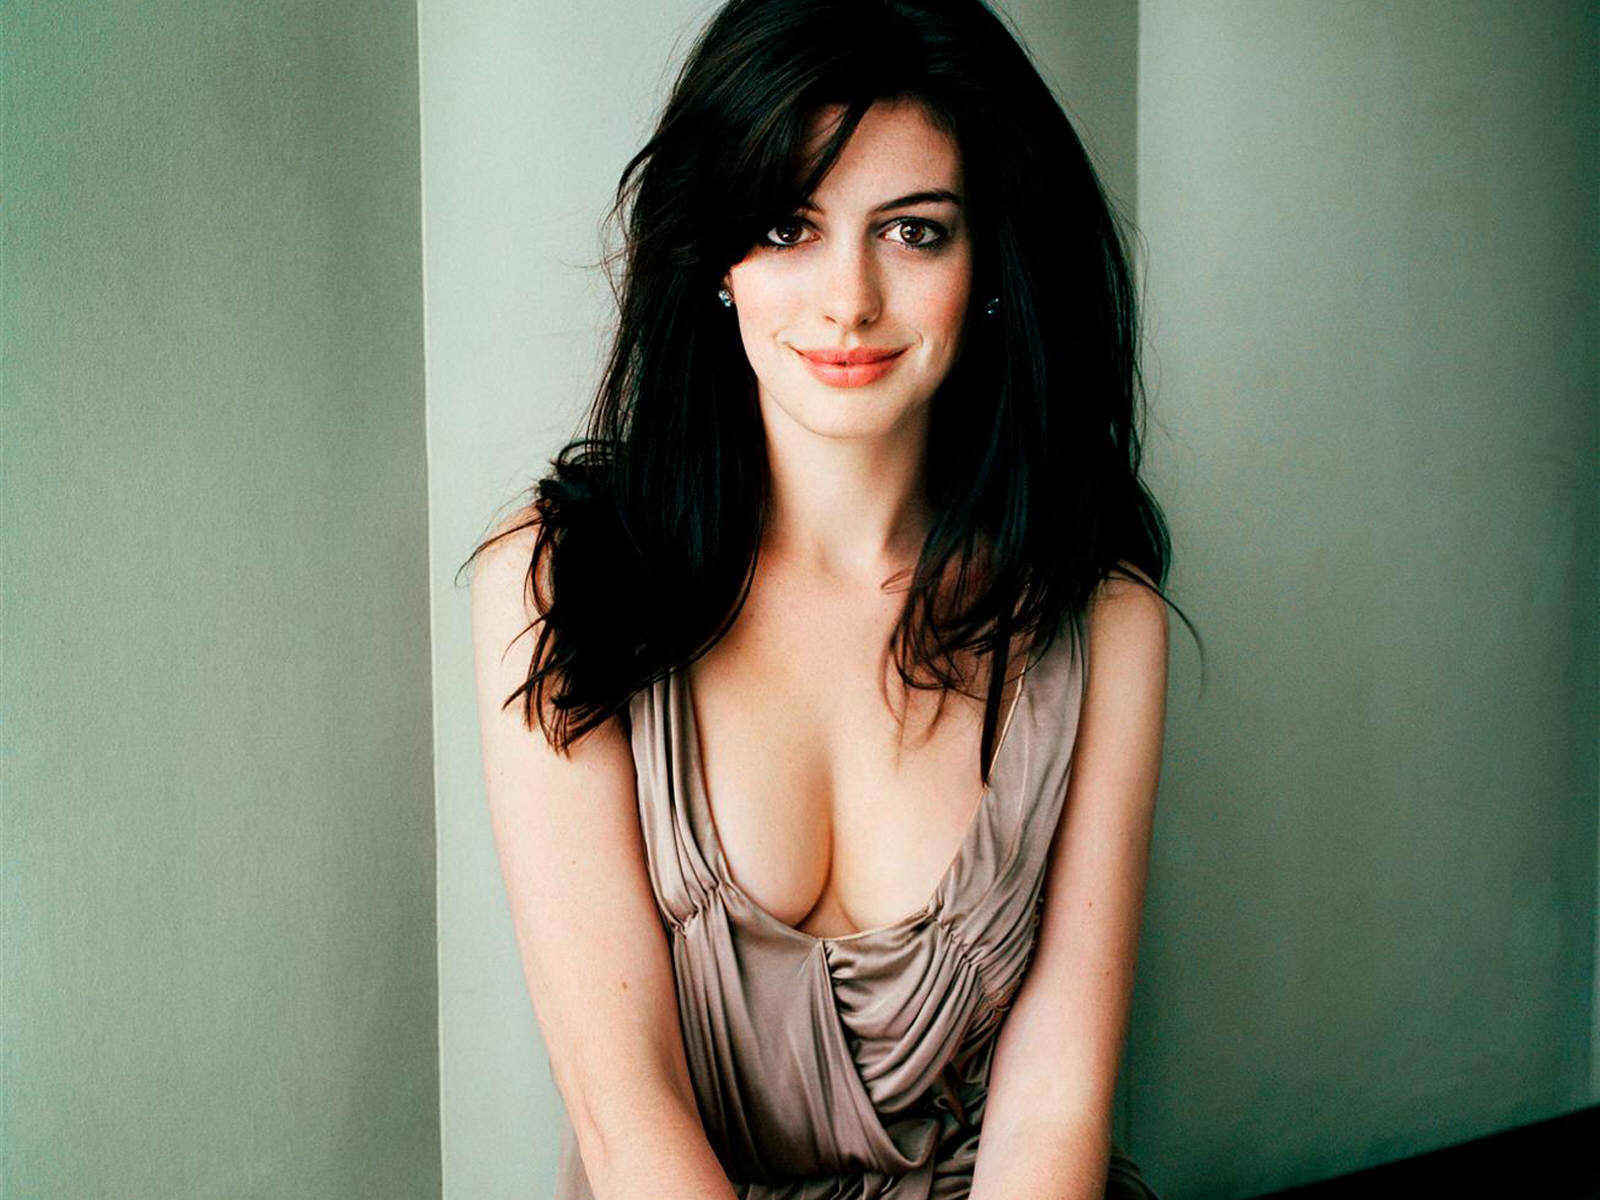 http://2.bp.blogspot.com/-hq-0_laTvQQ/TbGsLbwez4I/AAAAAAAAADQ/Nv7Ww9RR4Jo/s1600/anne_hathaway_hd-normal.jpg